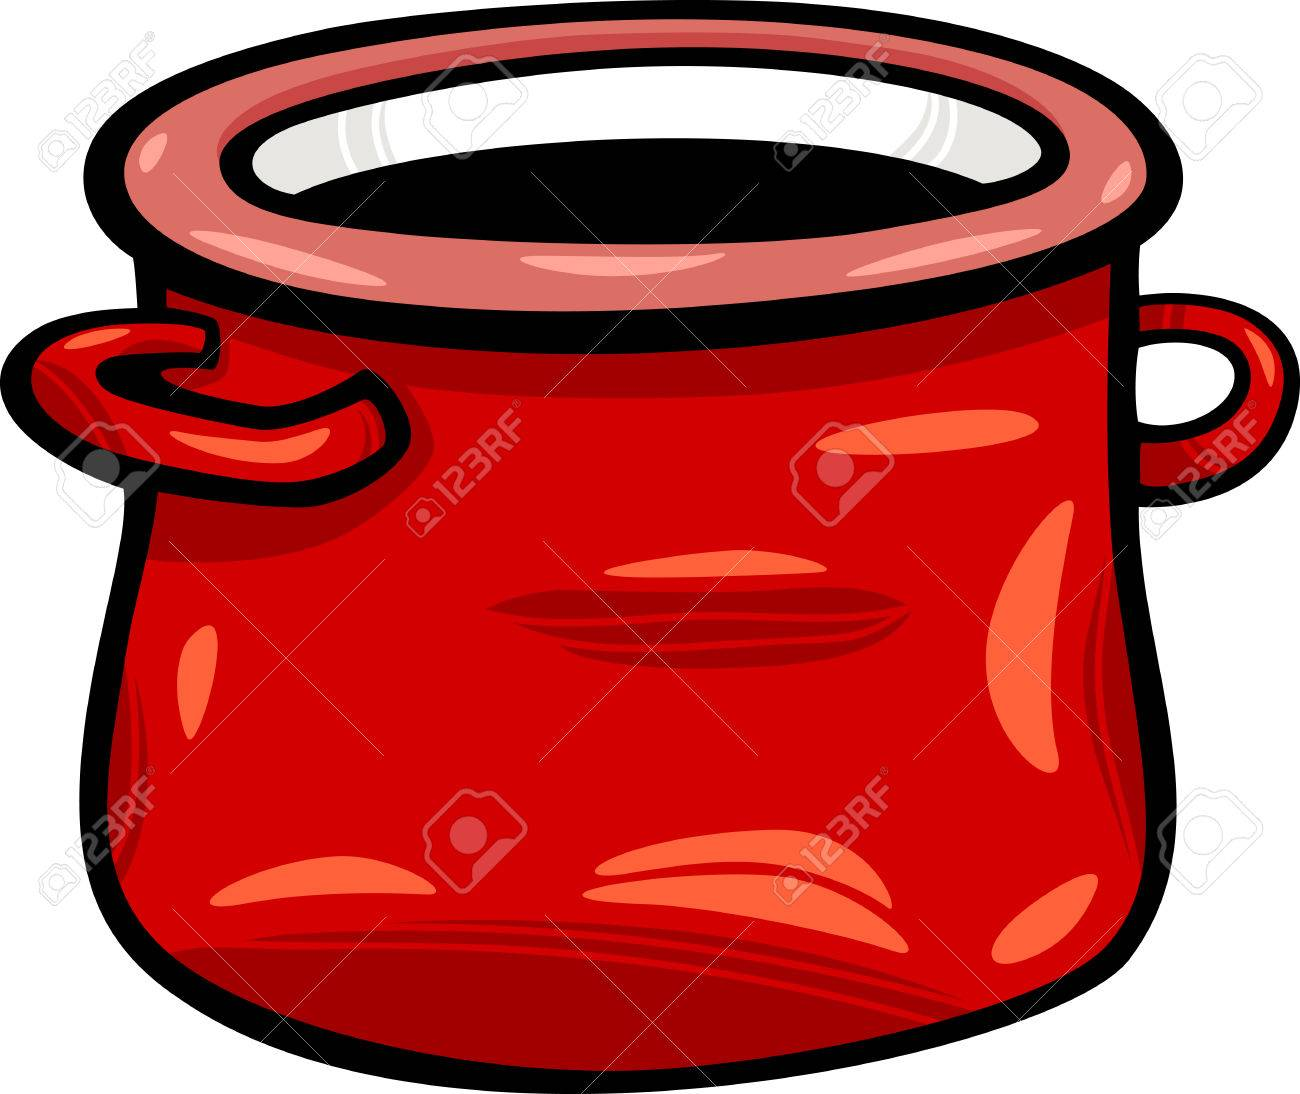 cartoon illustration of red jar or pot clip art royalty free rh 123rf com pot clipart clipart pot de peinture